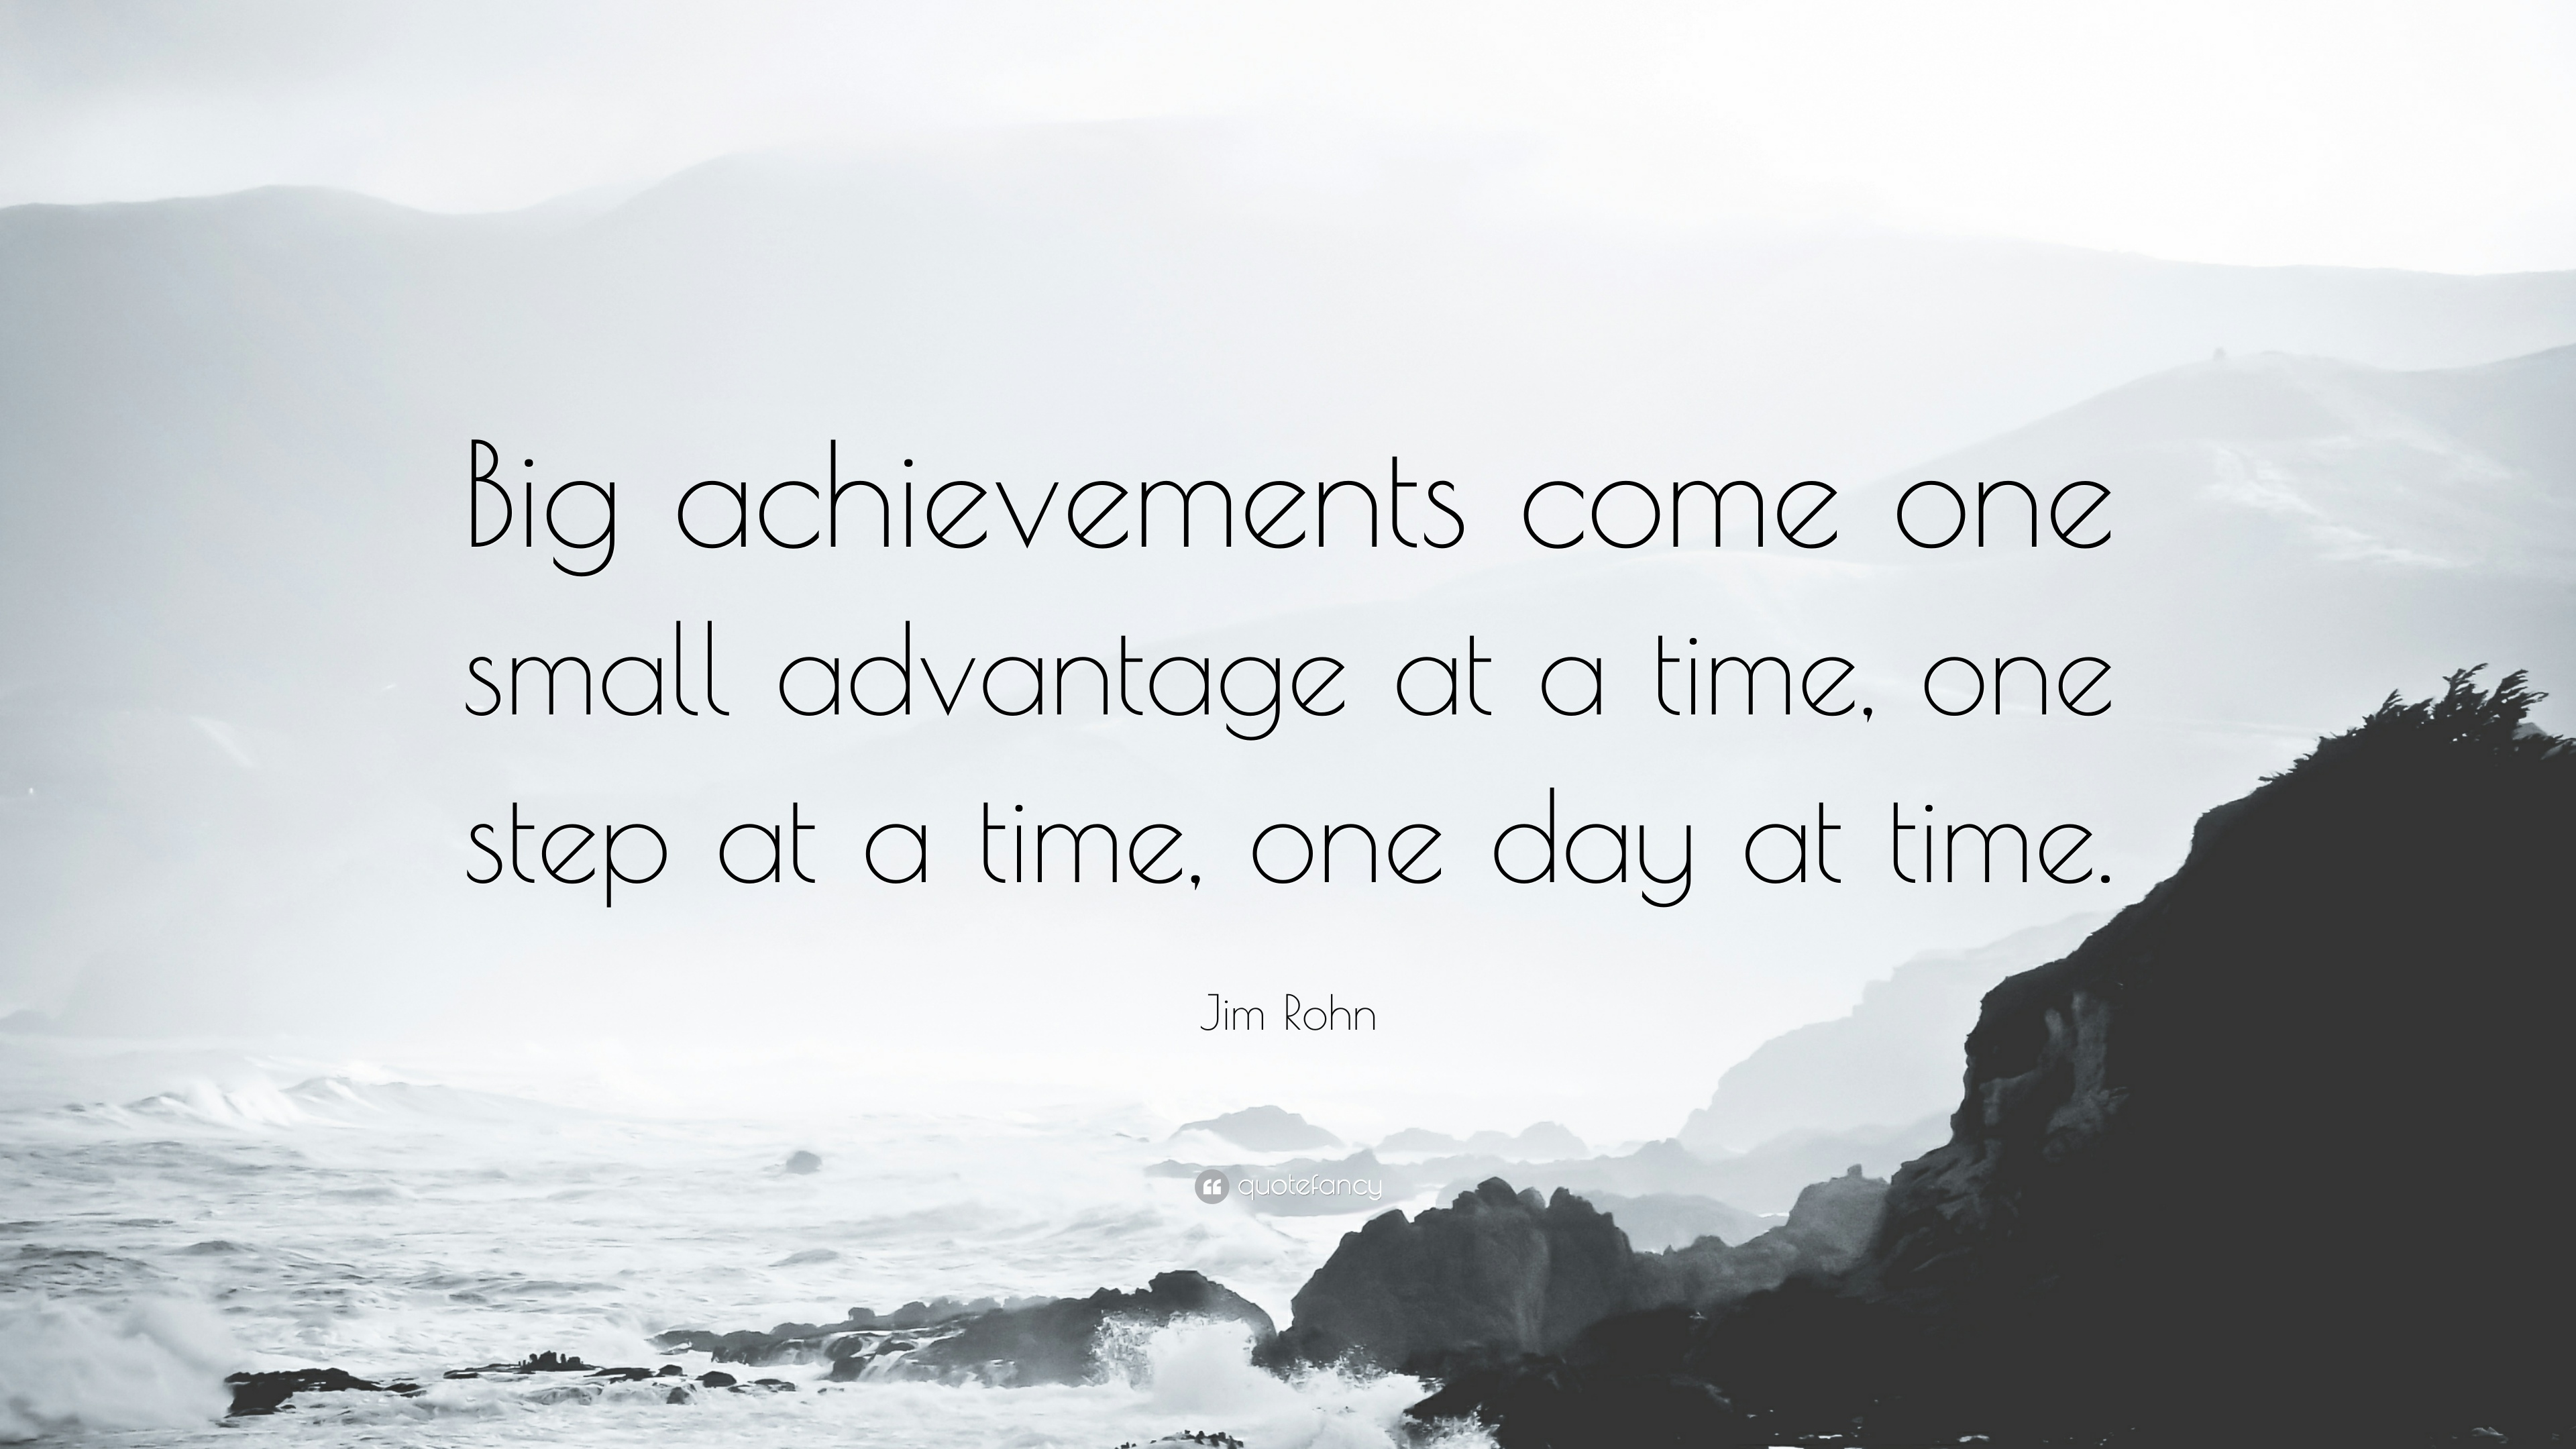 achievement quotes 40 wallpapers quotefancy. Black Bedroom Furniture Sets. Home Design Ideas